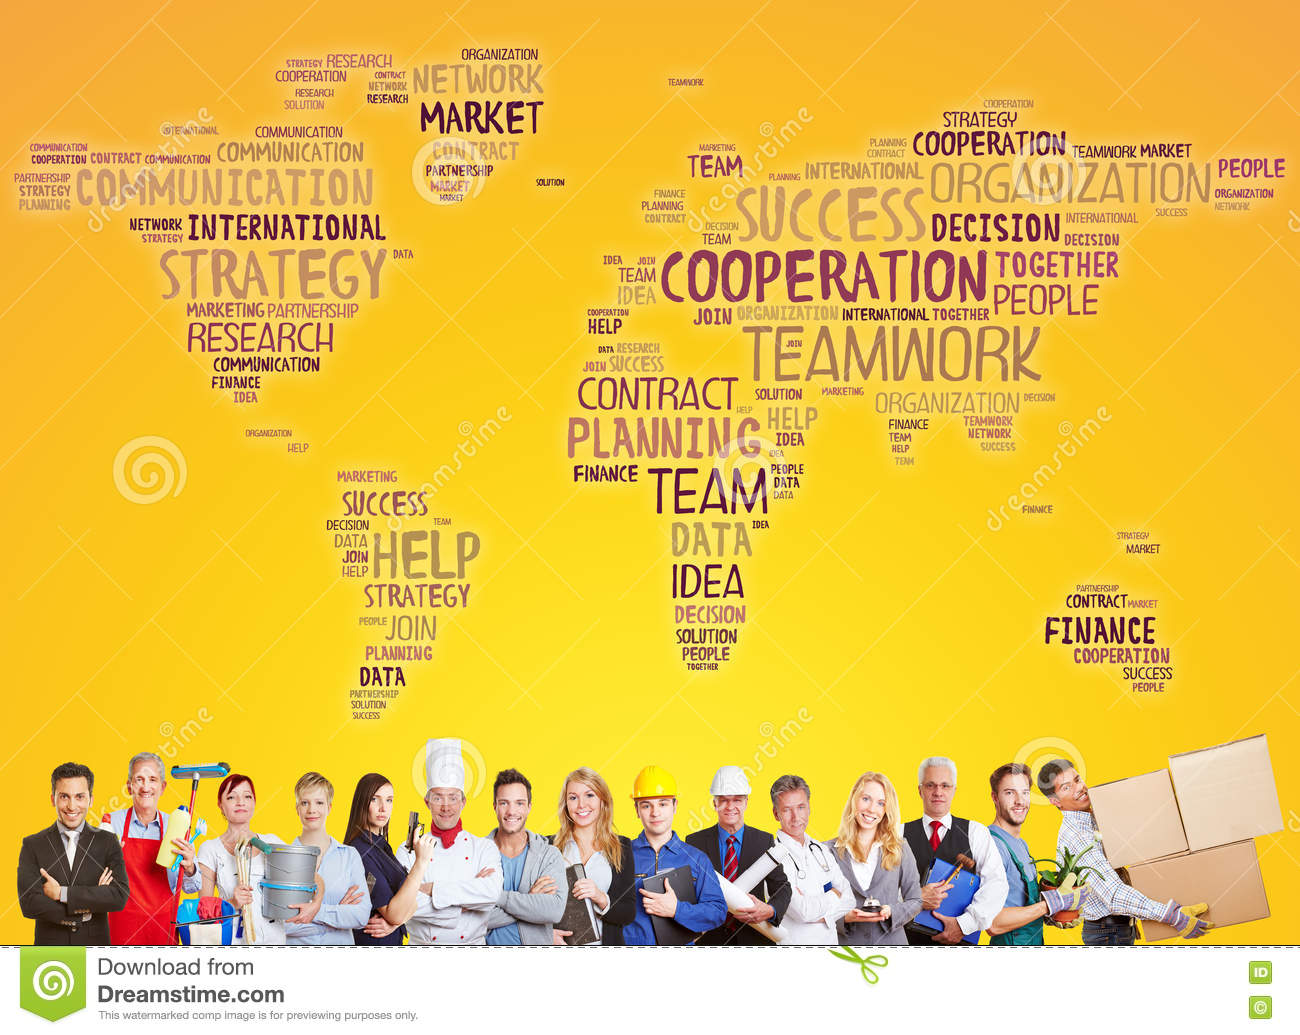 International cooperation and success team